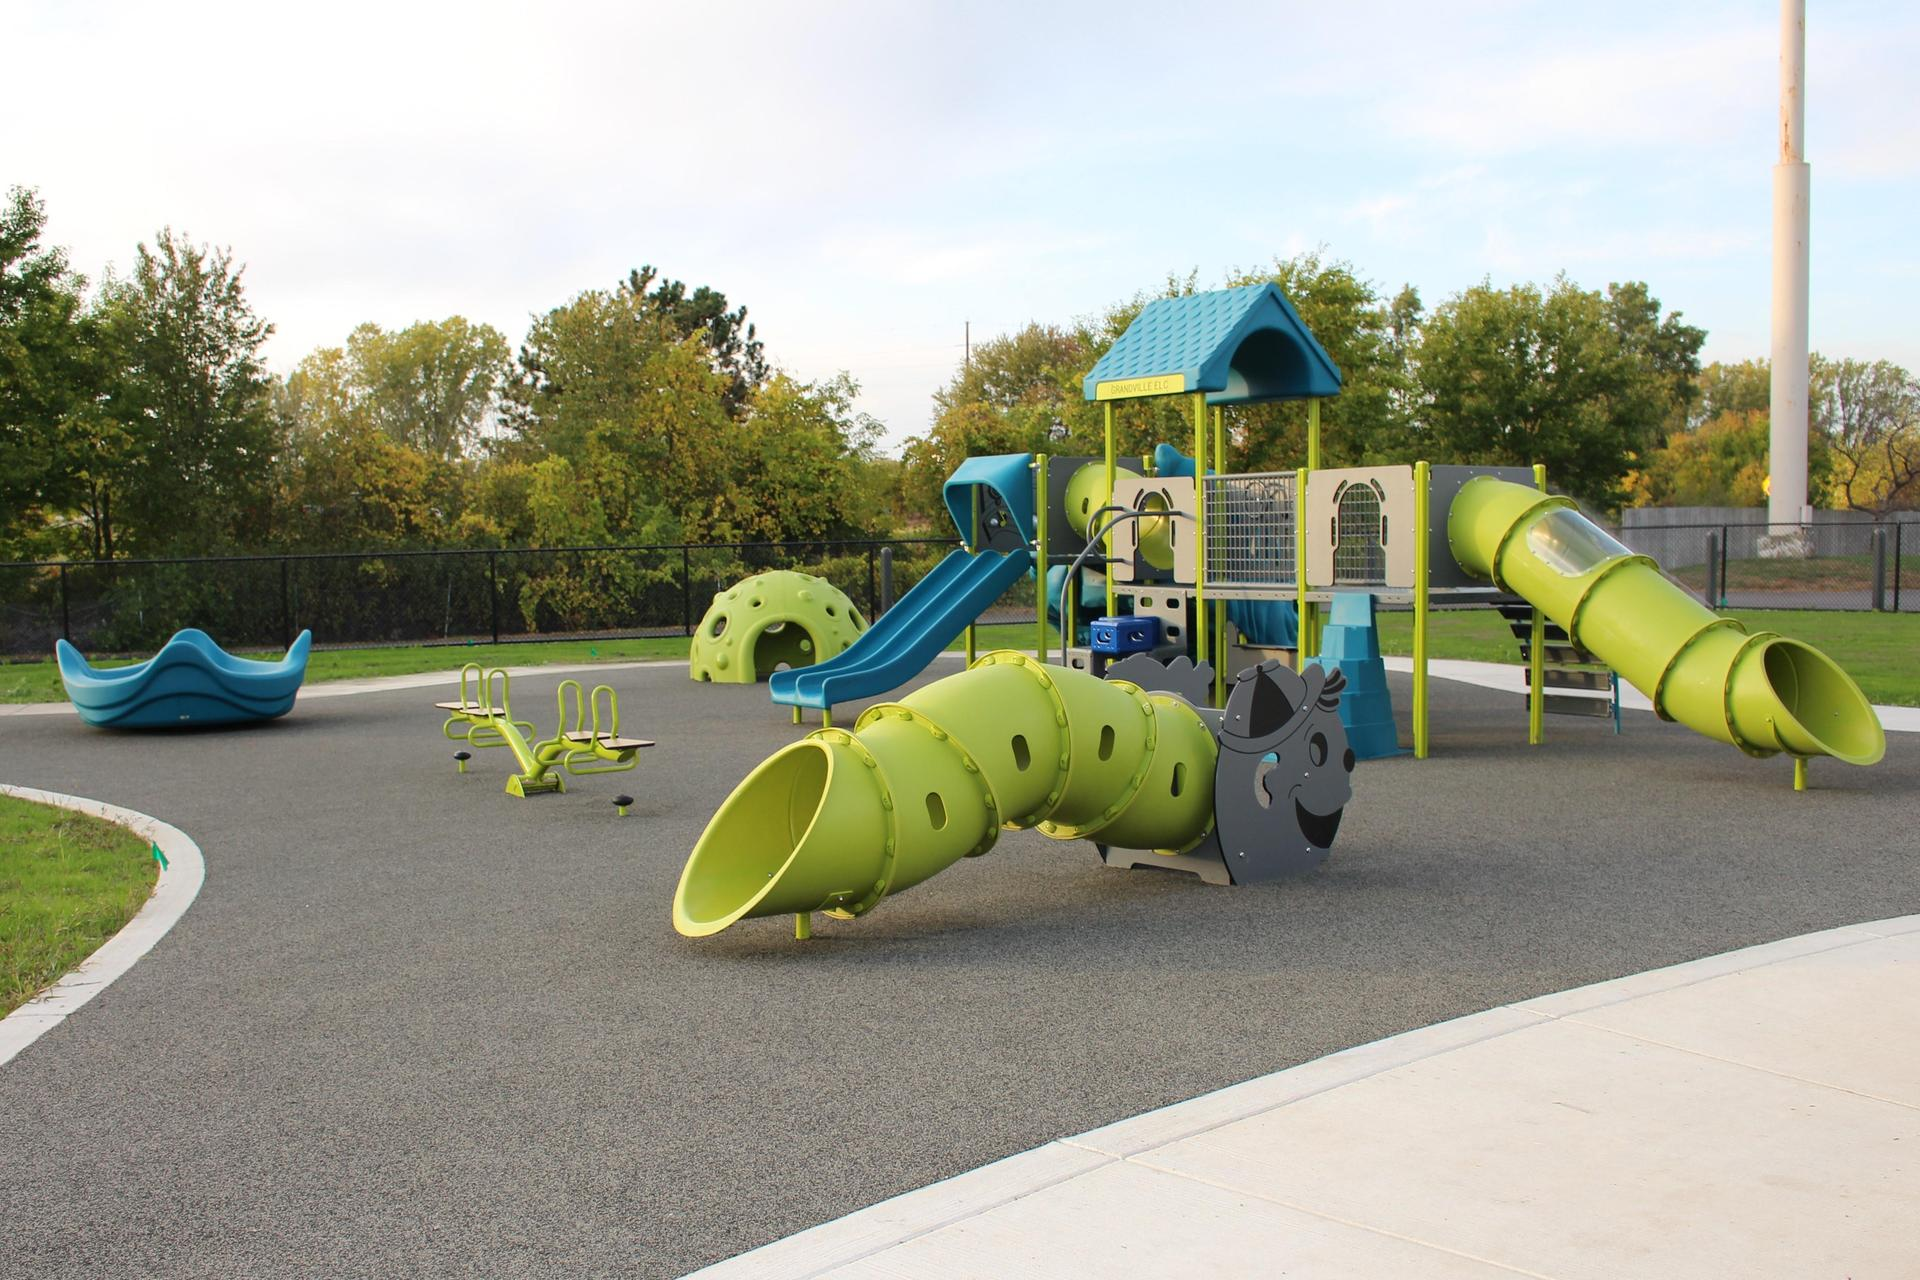 Playground for toddlers and preschoolers